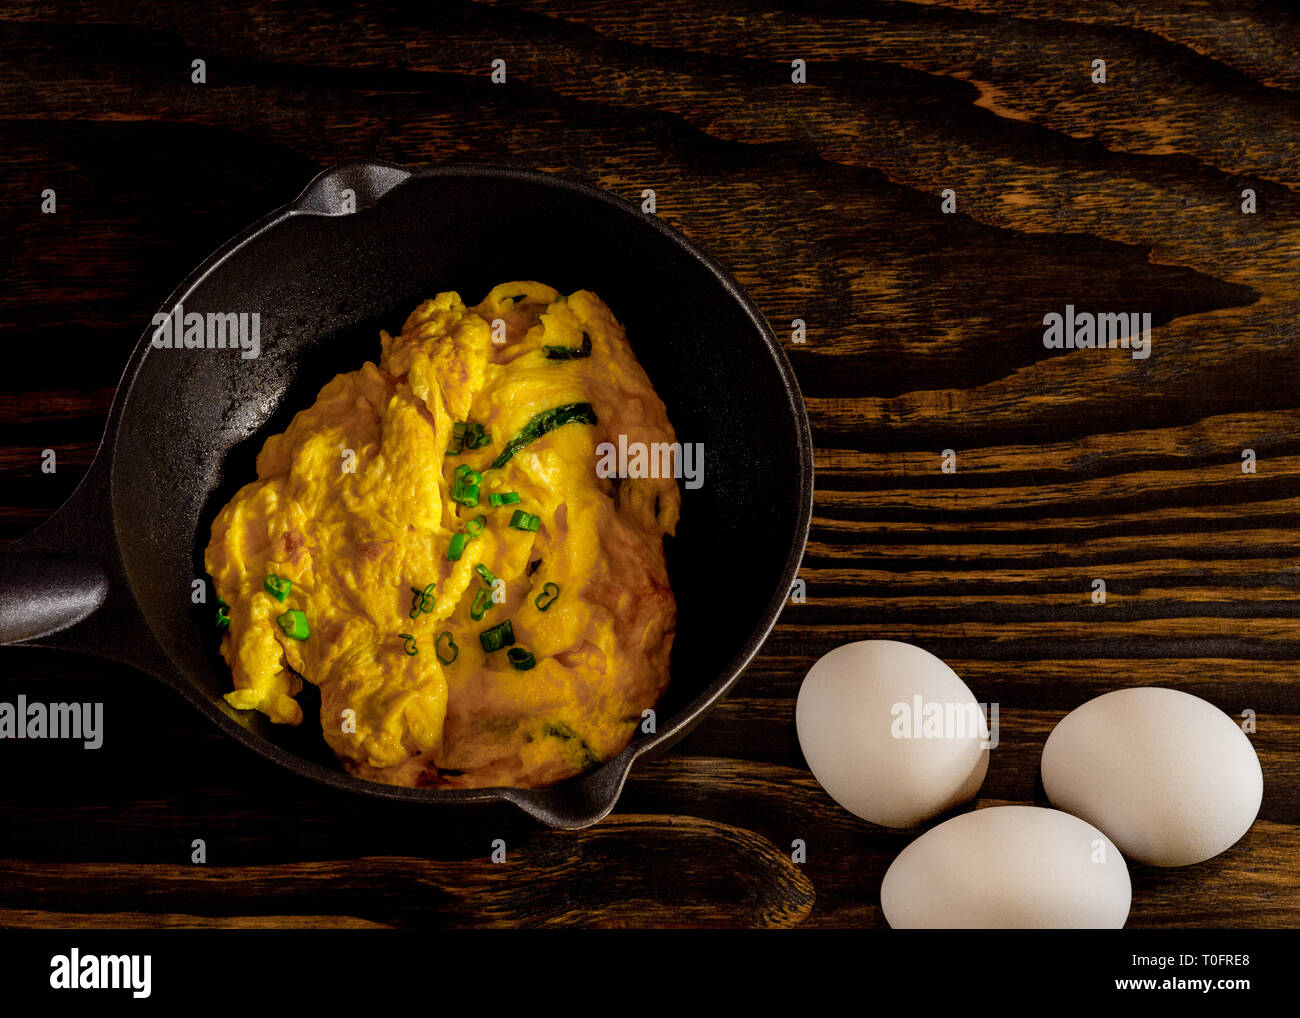 Omelet in frying pan with eggs, wood table background. - Stock Image